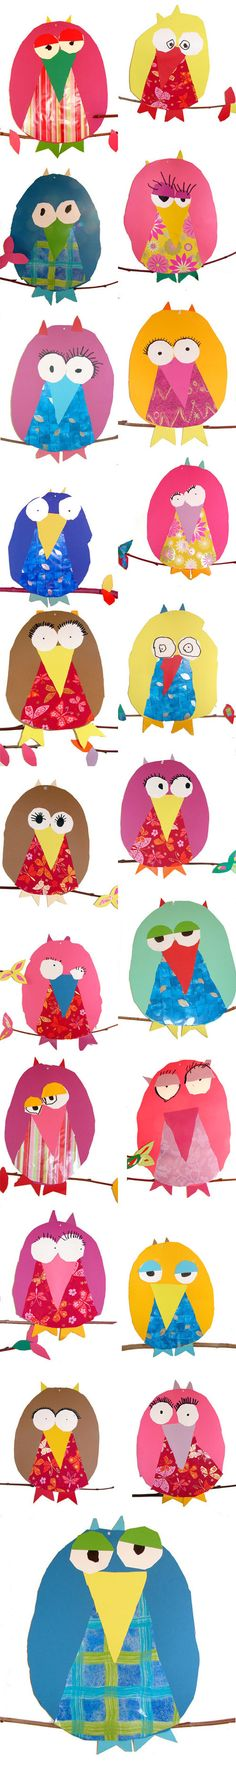 Bird Kid Craft